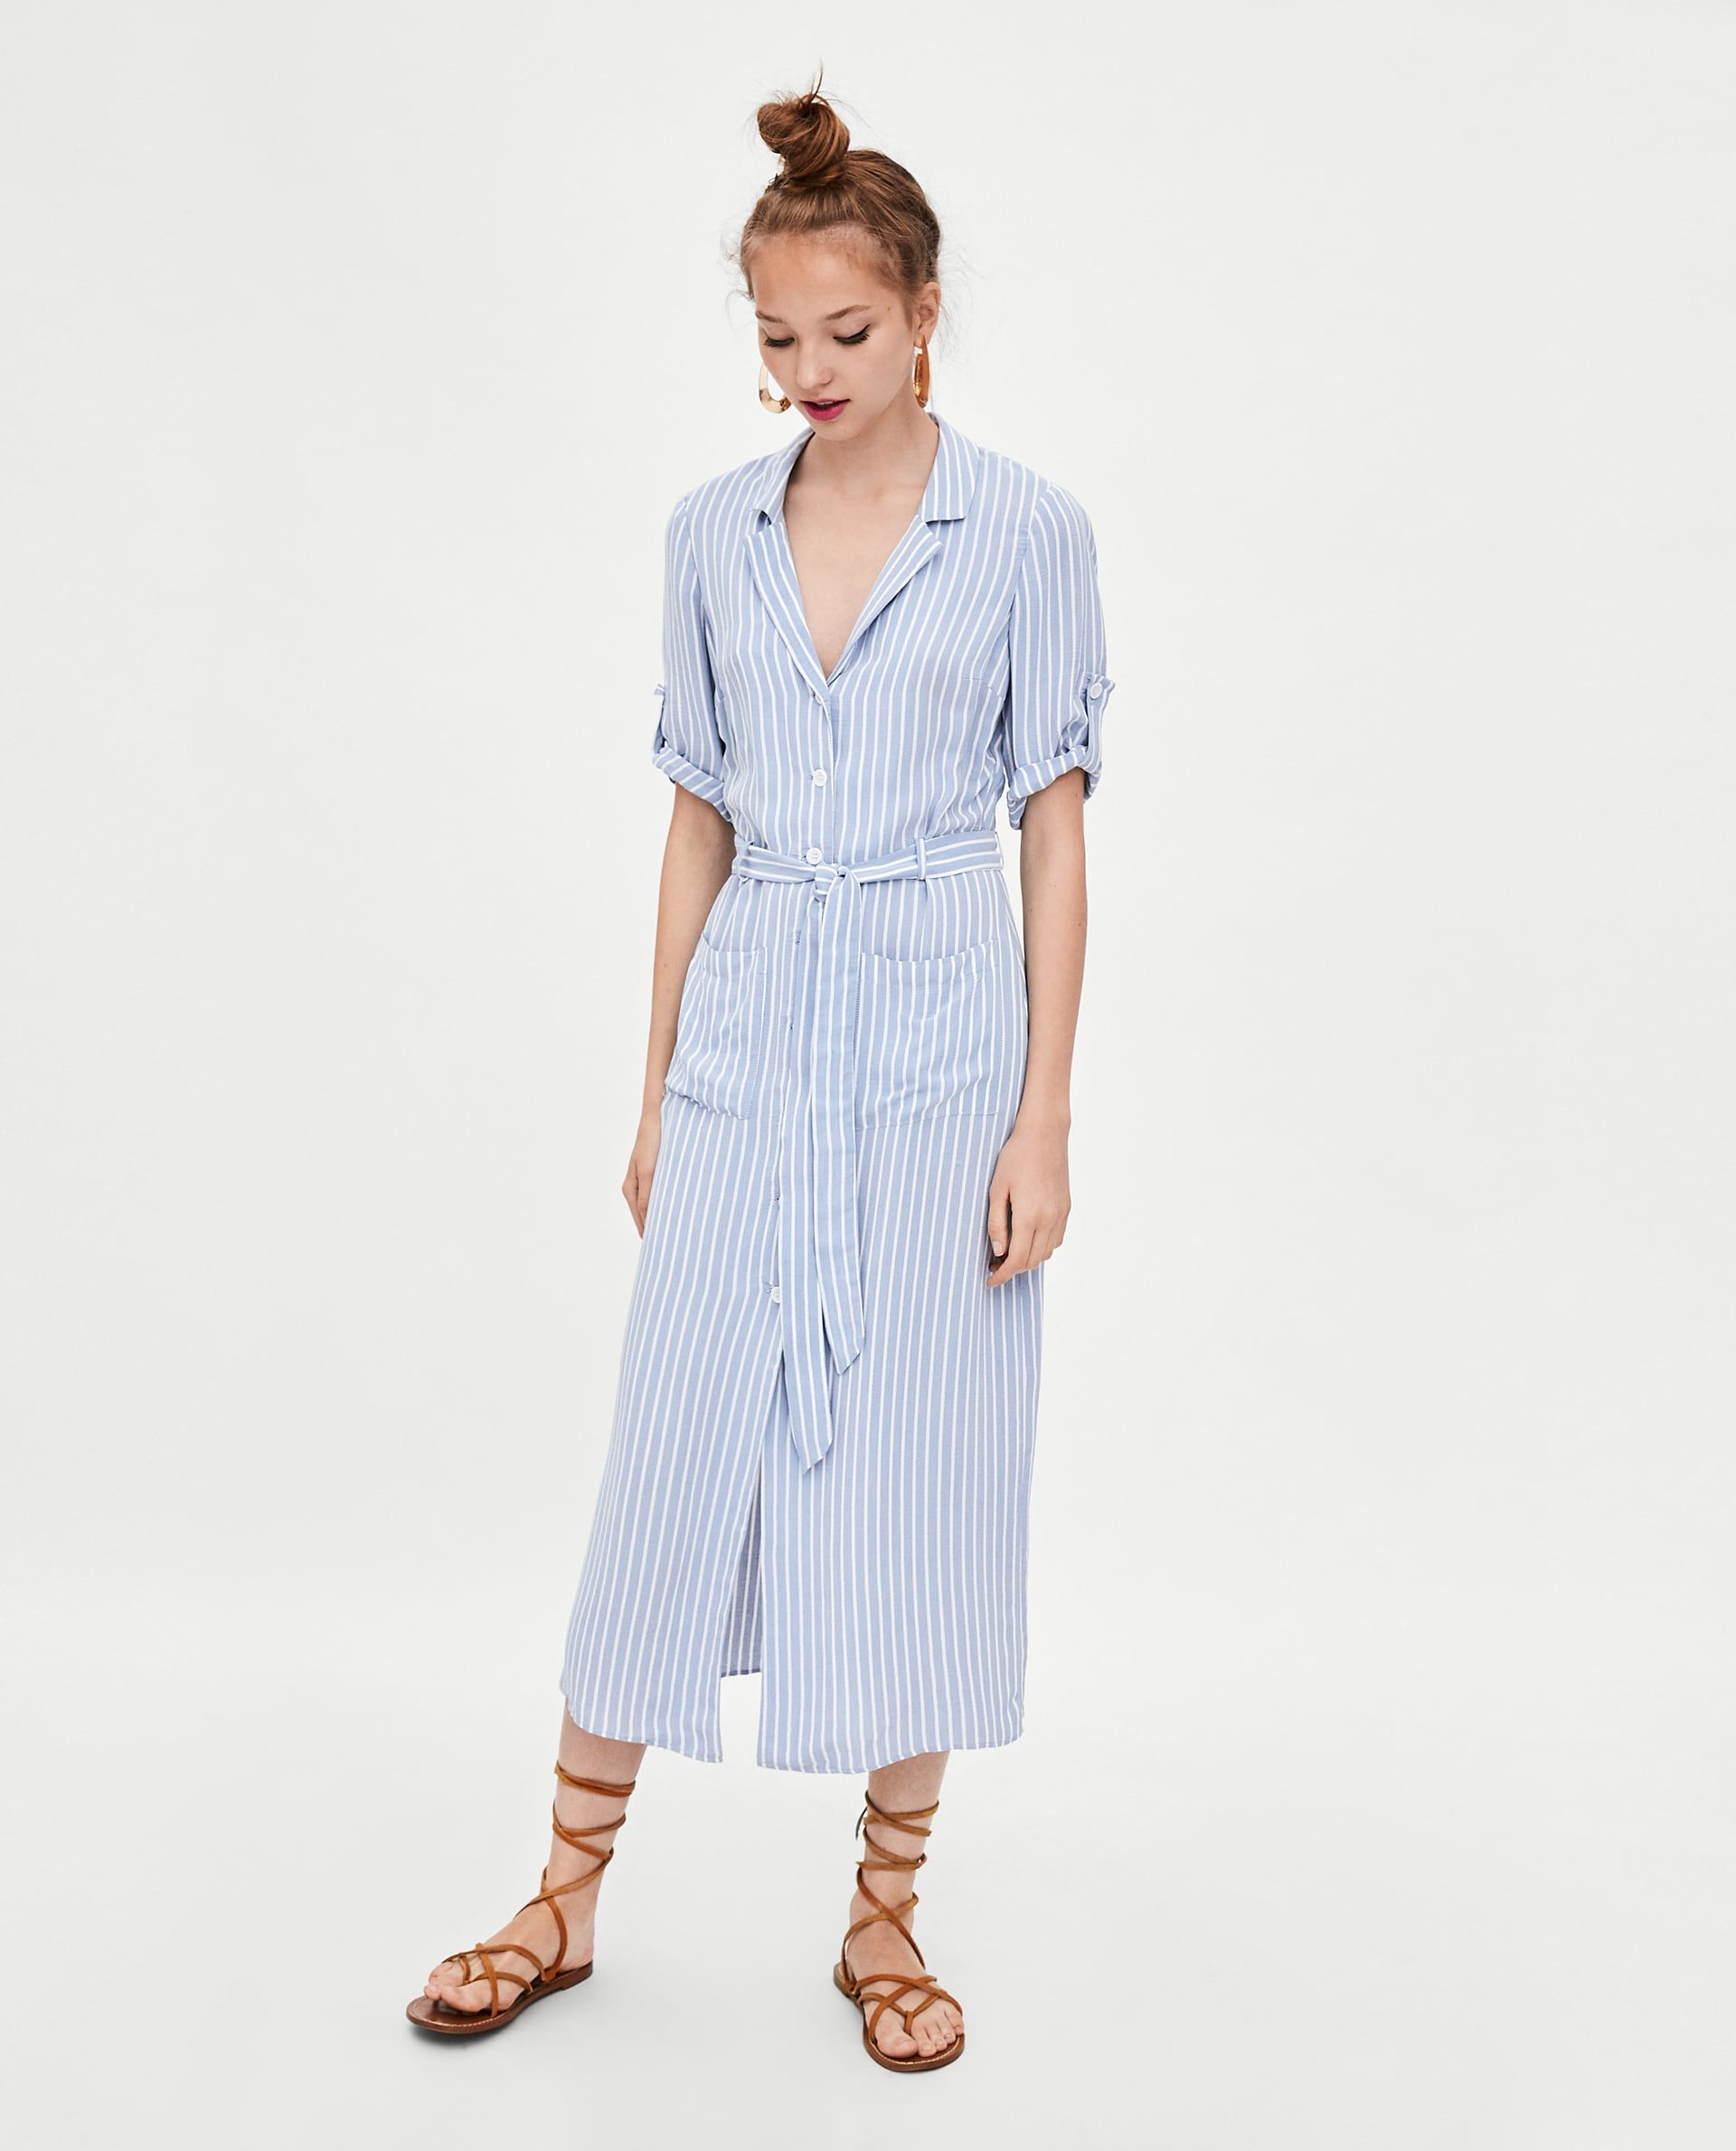 bc3f4602 Image 1 of STRIPED SHIRT DRESS from Zara | Seasonal: Summer 2018 in ...